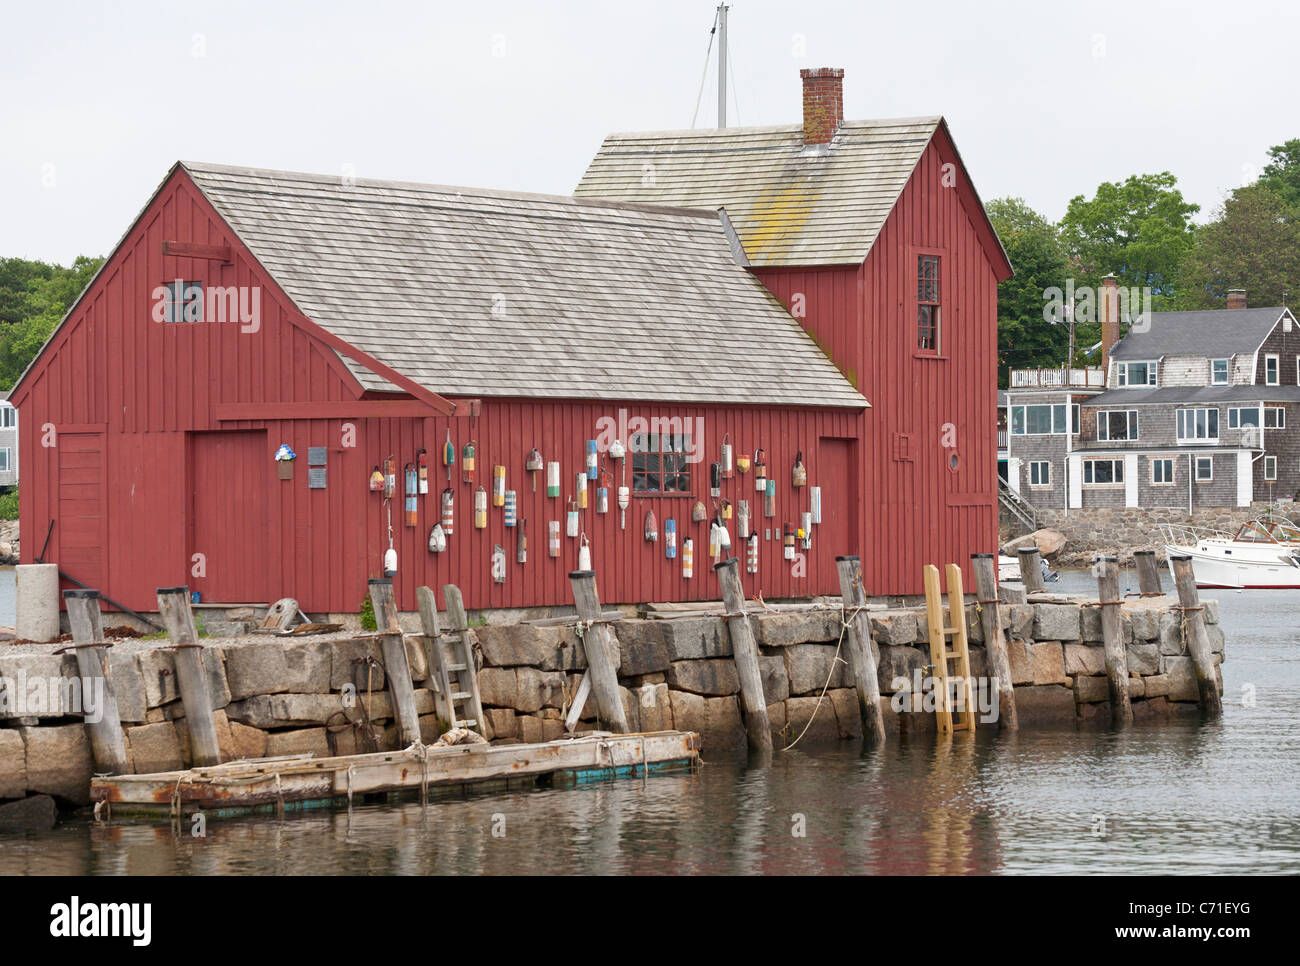 Motif #1 at Rockport. An old red boathouse on the harbor at Rockport is a favorite for artists. - Stock Image